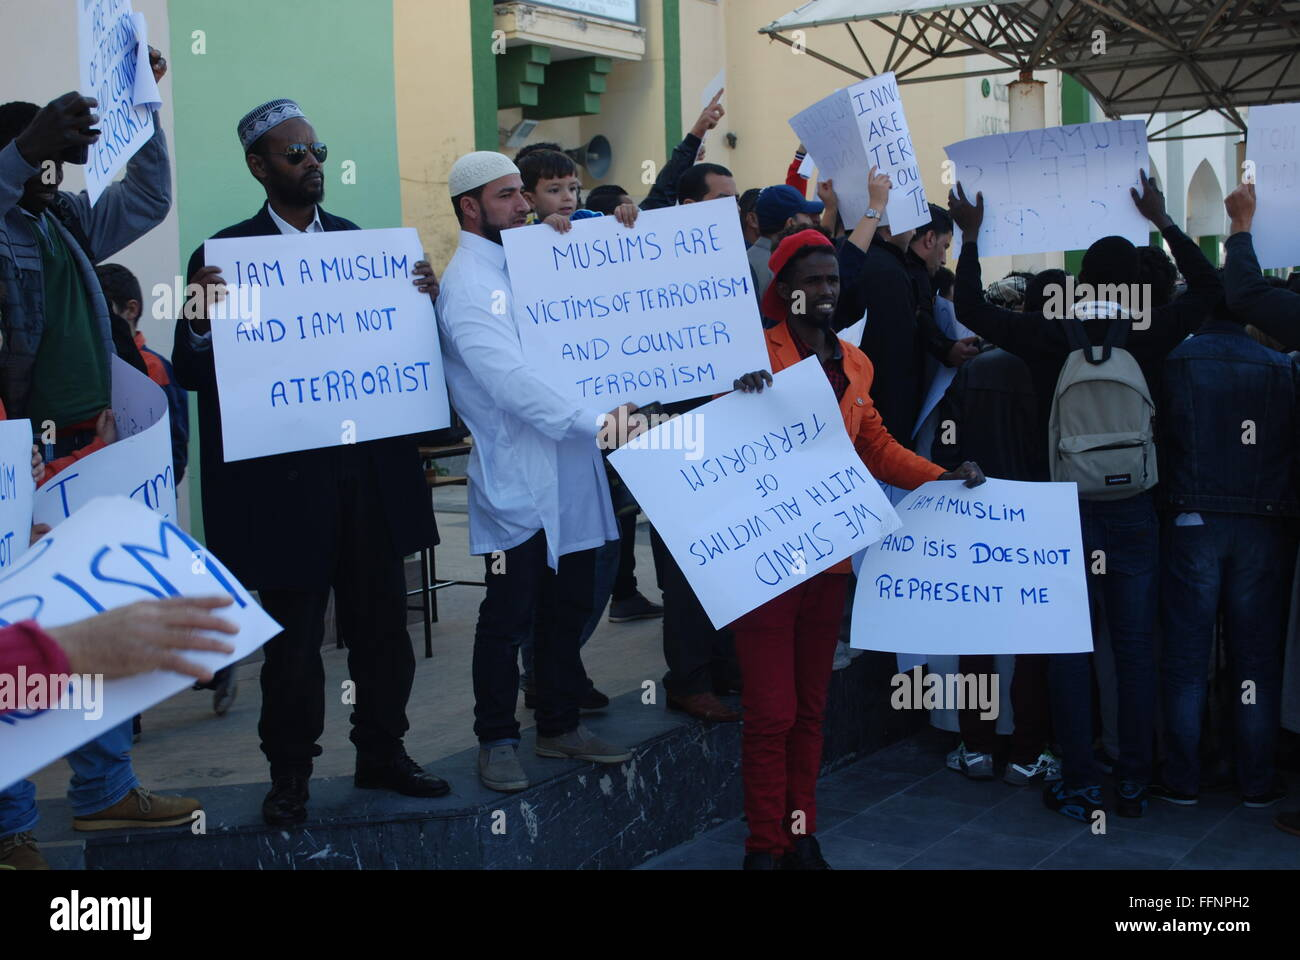 Moslem's demonstrating against terrorism on the island of Malta (11/12/2015) following last year's global - Stock Image